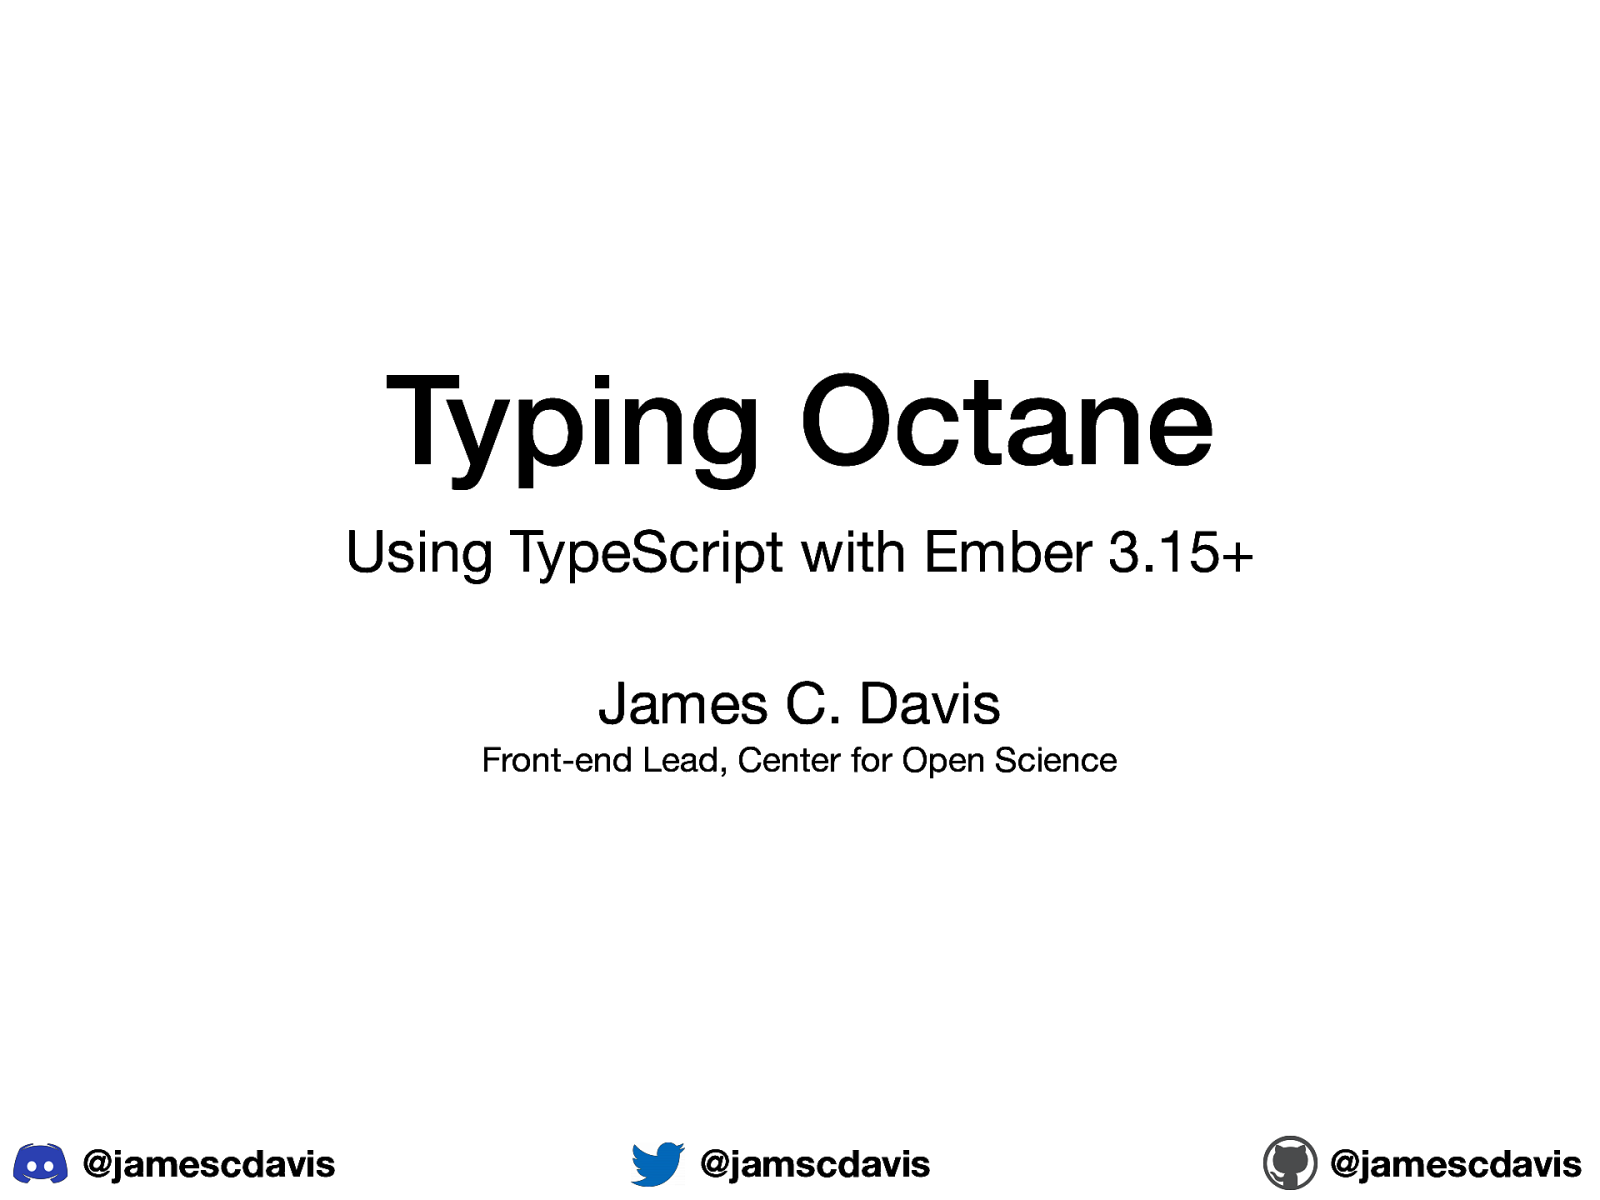 Typing Octane: Using TypeScript with Ember 3.15+